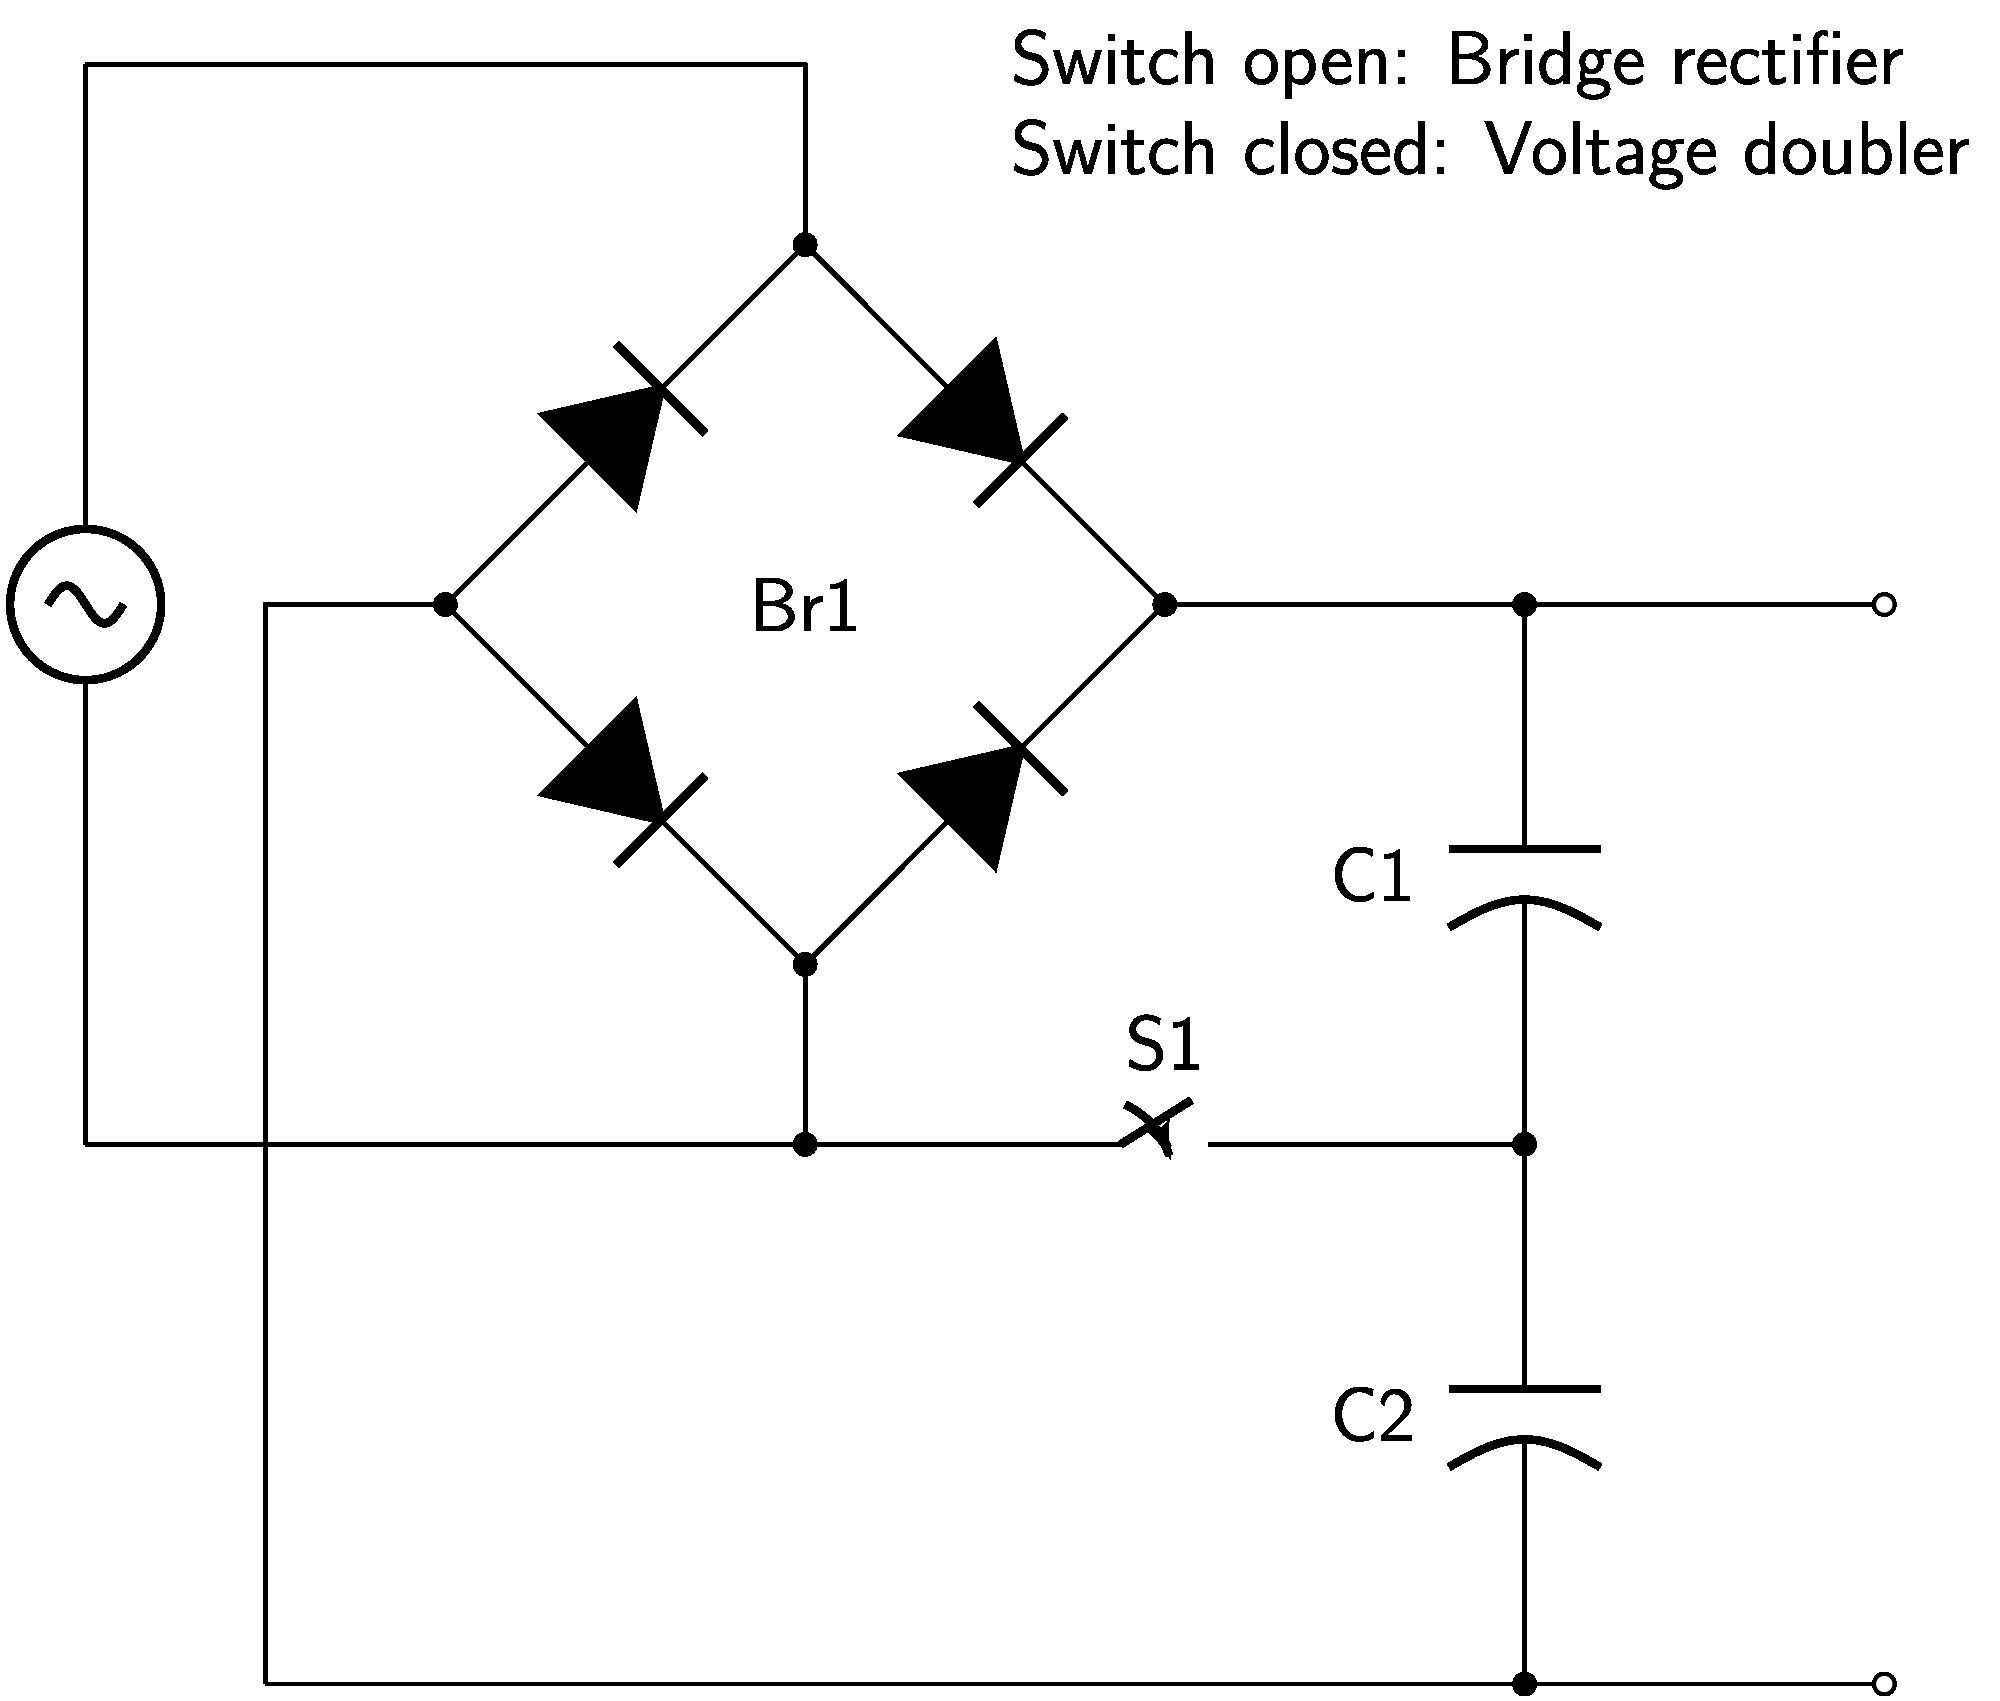 medium resolution of way bridge rectifier wiring diagram components tube unusual kbpc3510 inside wiring diagram bridge rectifier